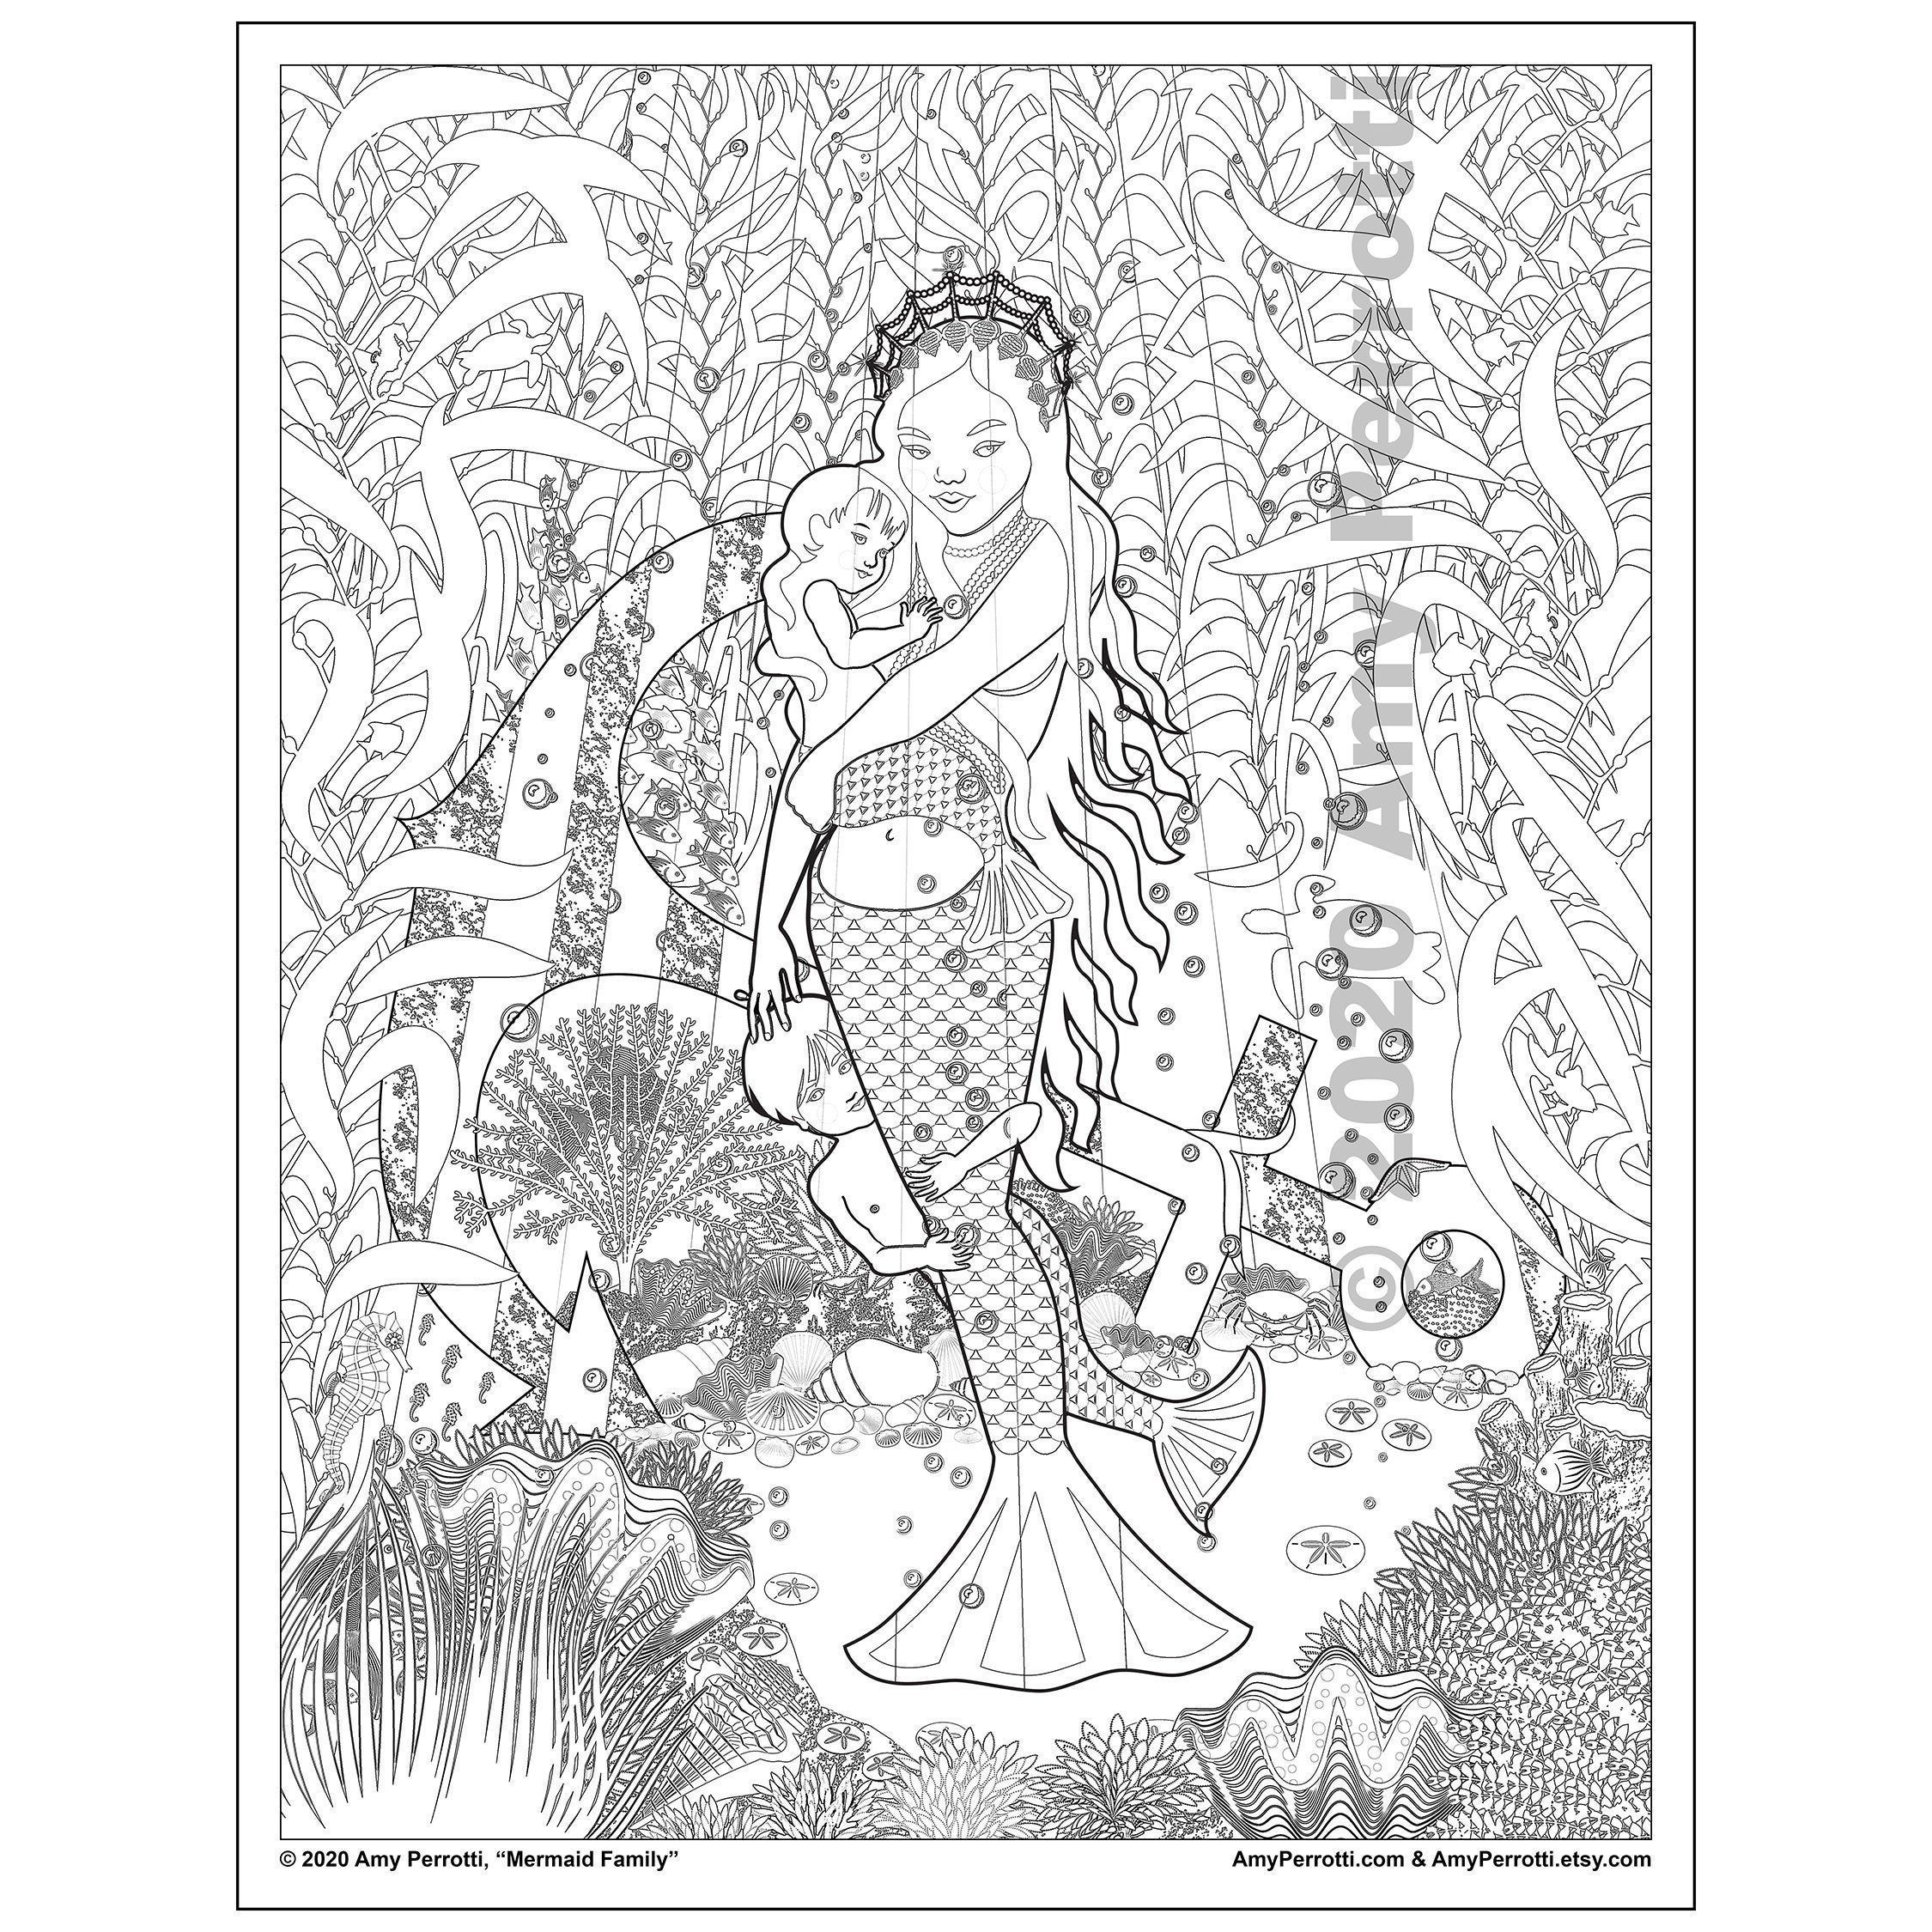 Mermaid Family Coloring Page Printable File Etsy In 2021 Family Coloring Pages Coloring Pages Cool Coloring Pages